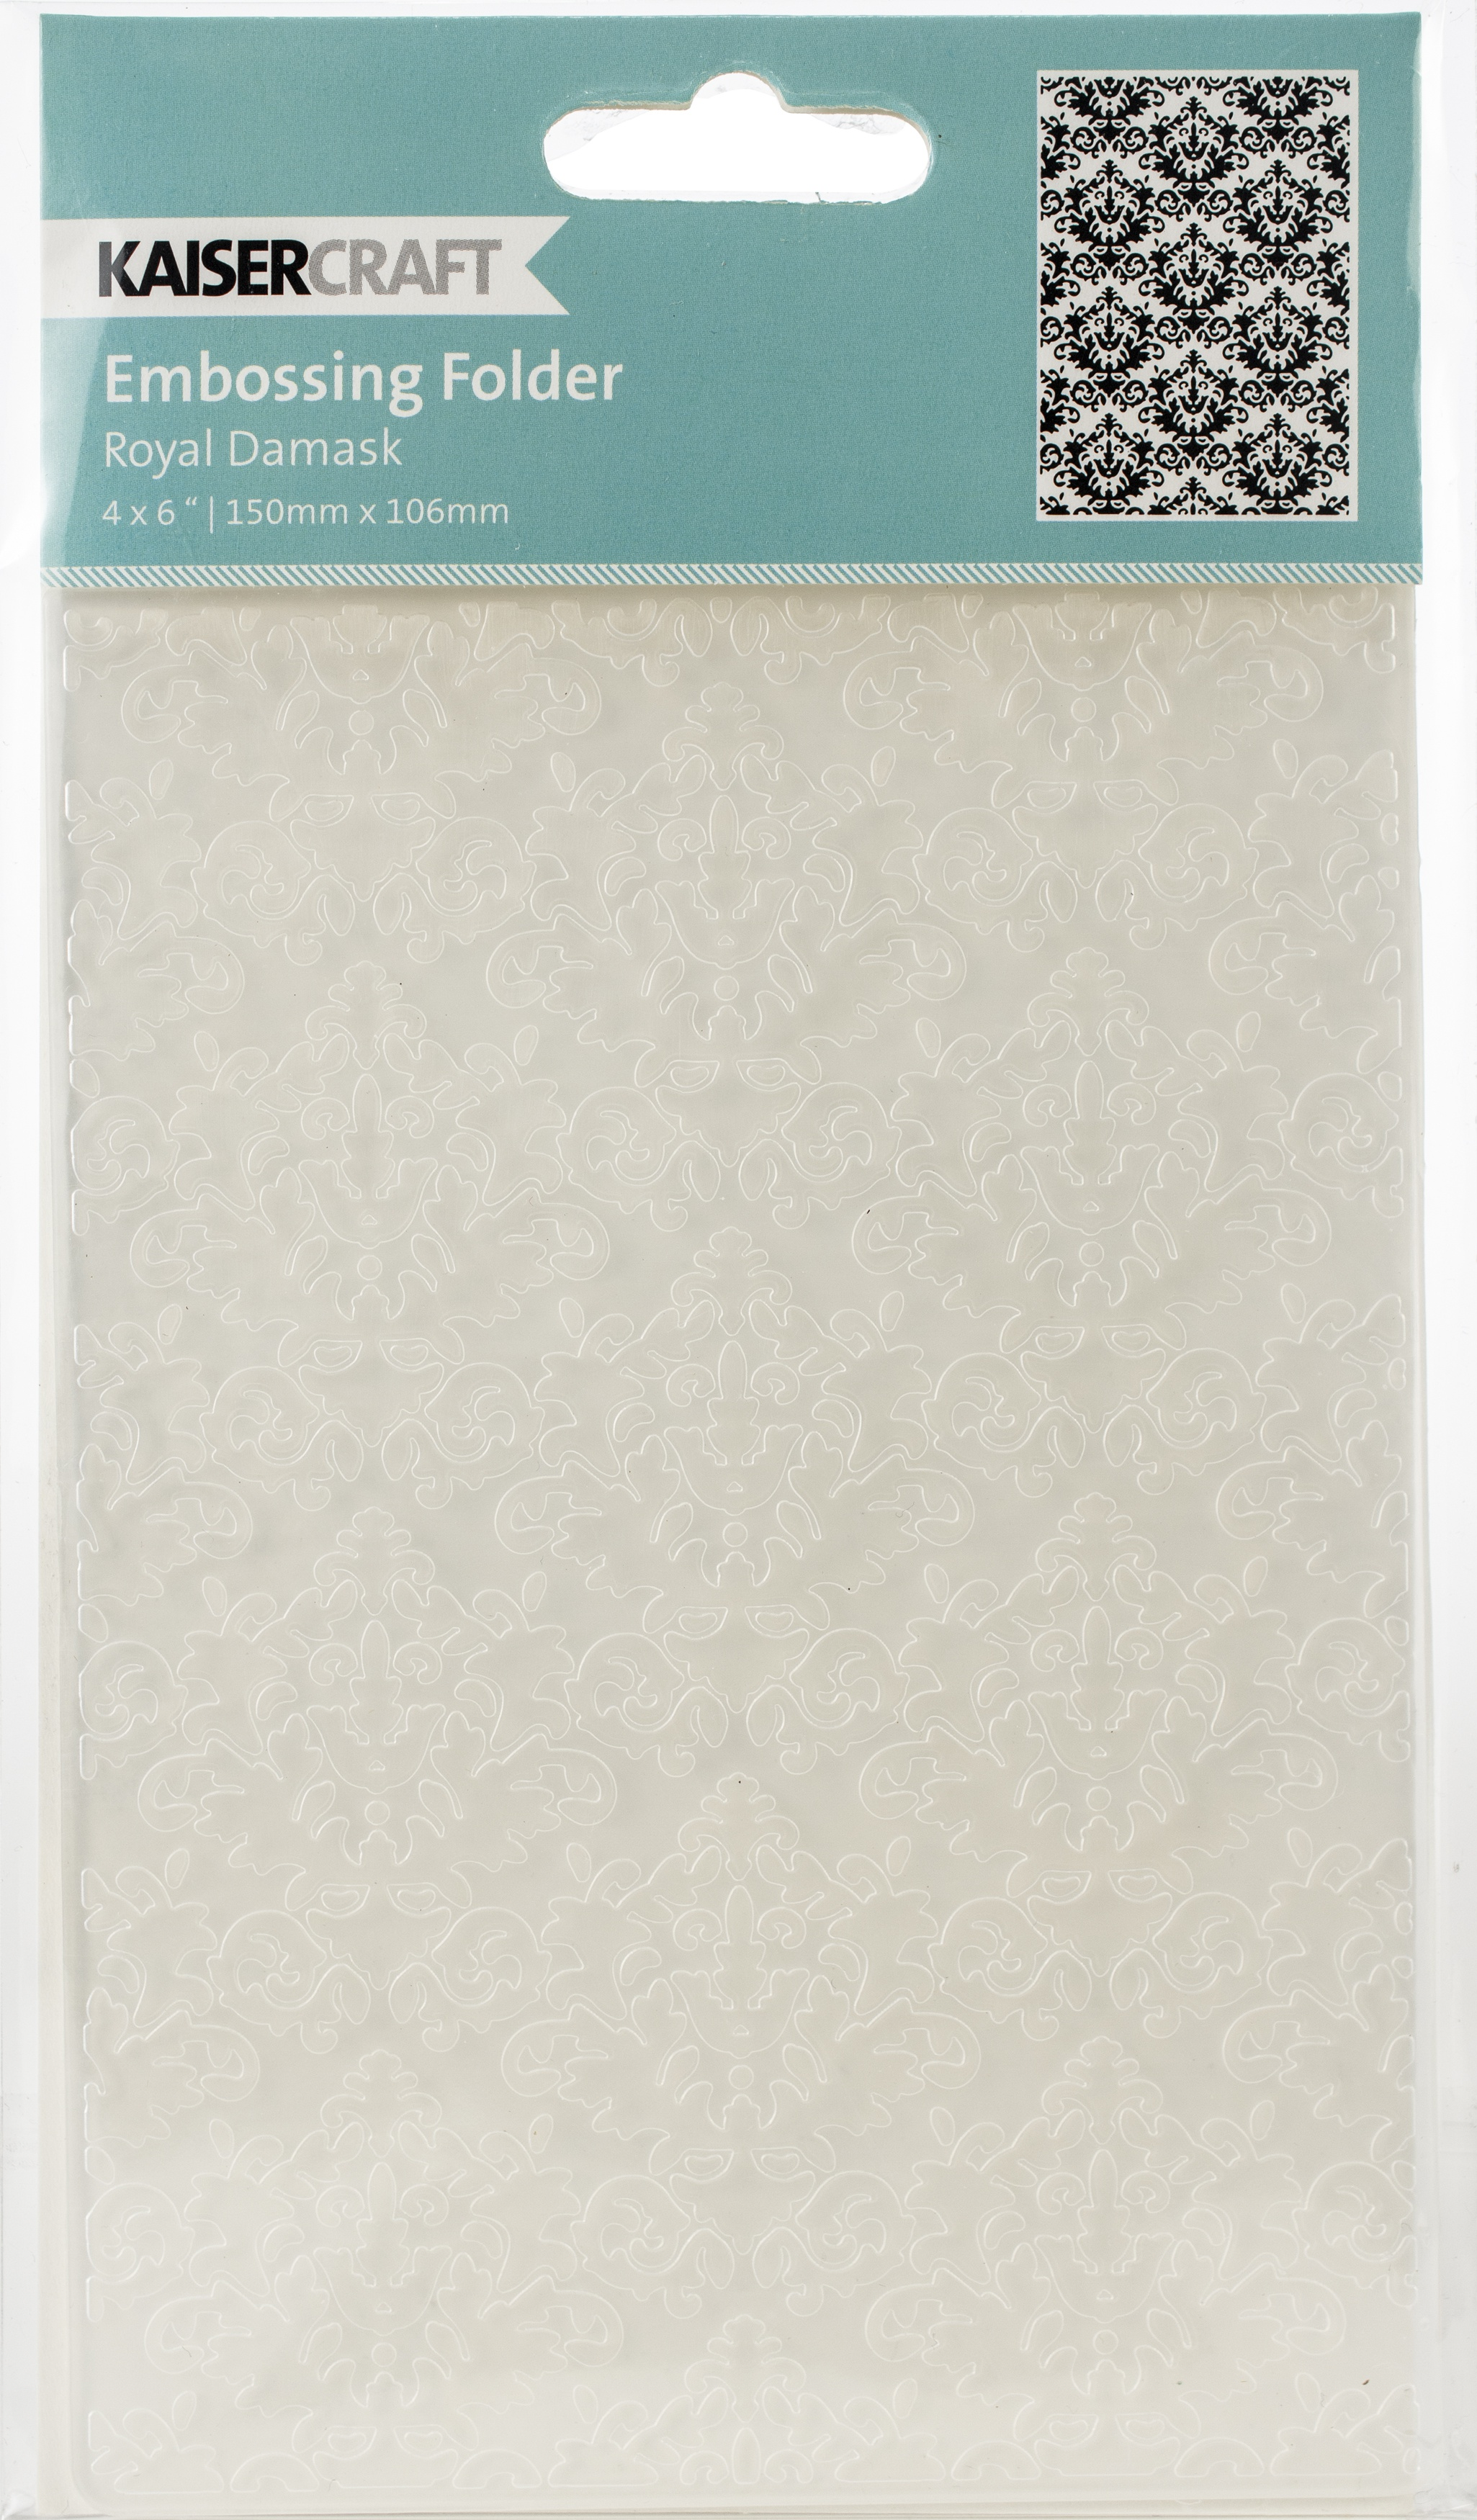 Kaisercraft Embossing Folder 4X6-Royal Damask